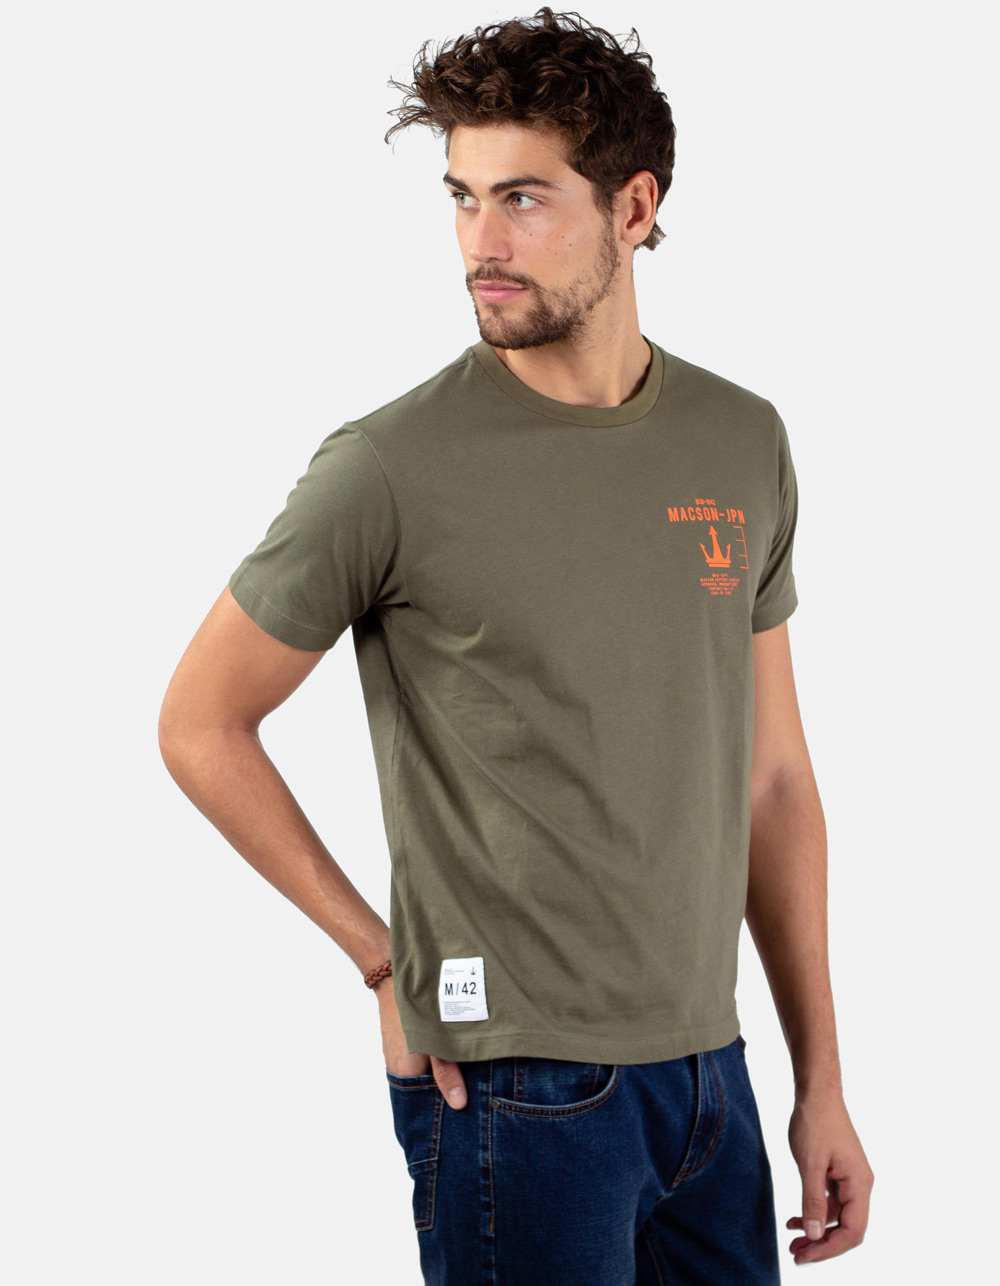 Green t-shirt with printed letters.